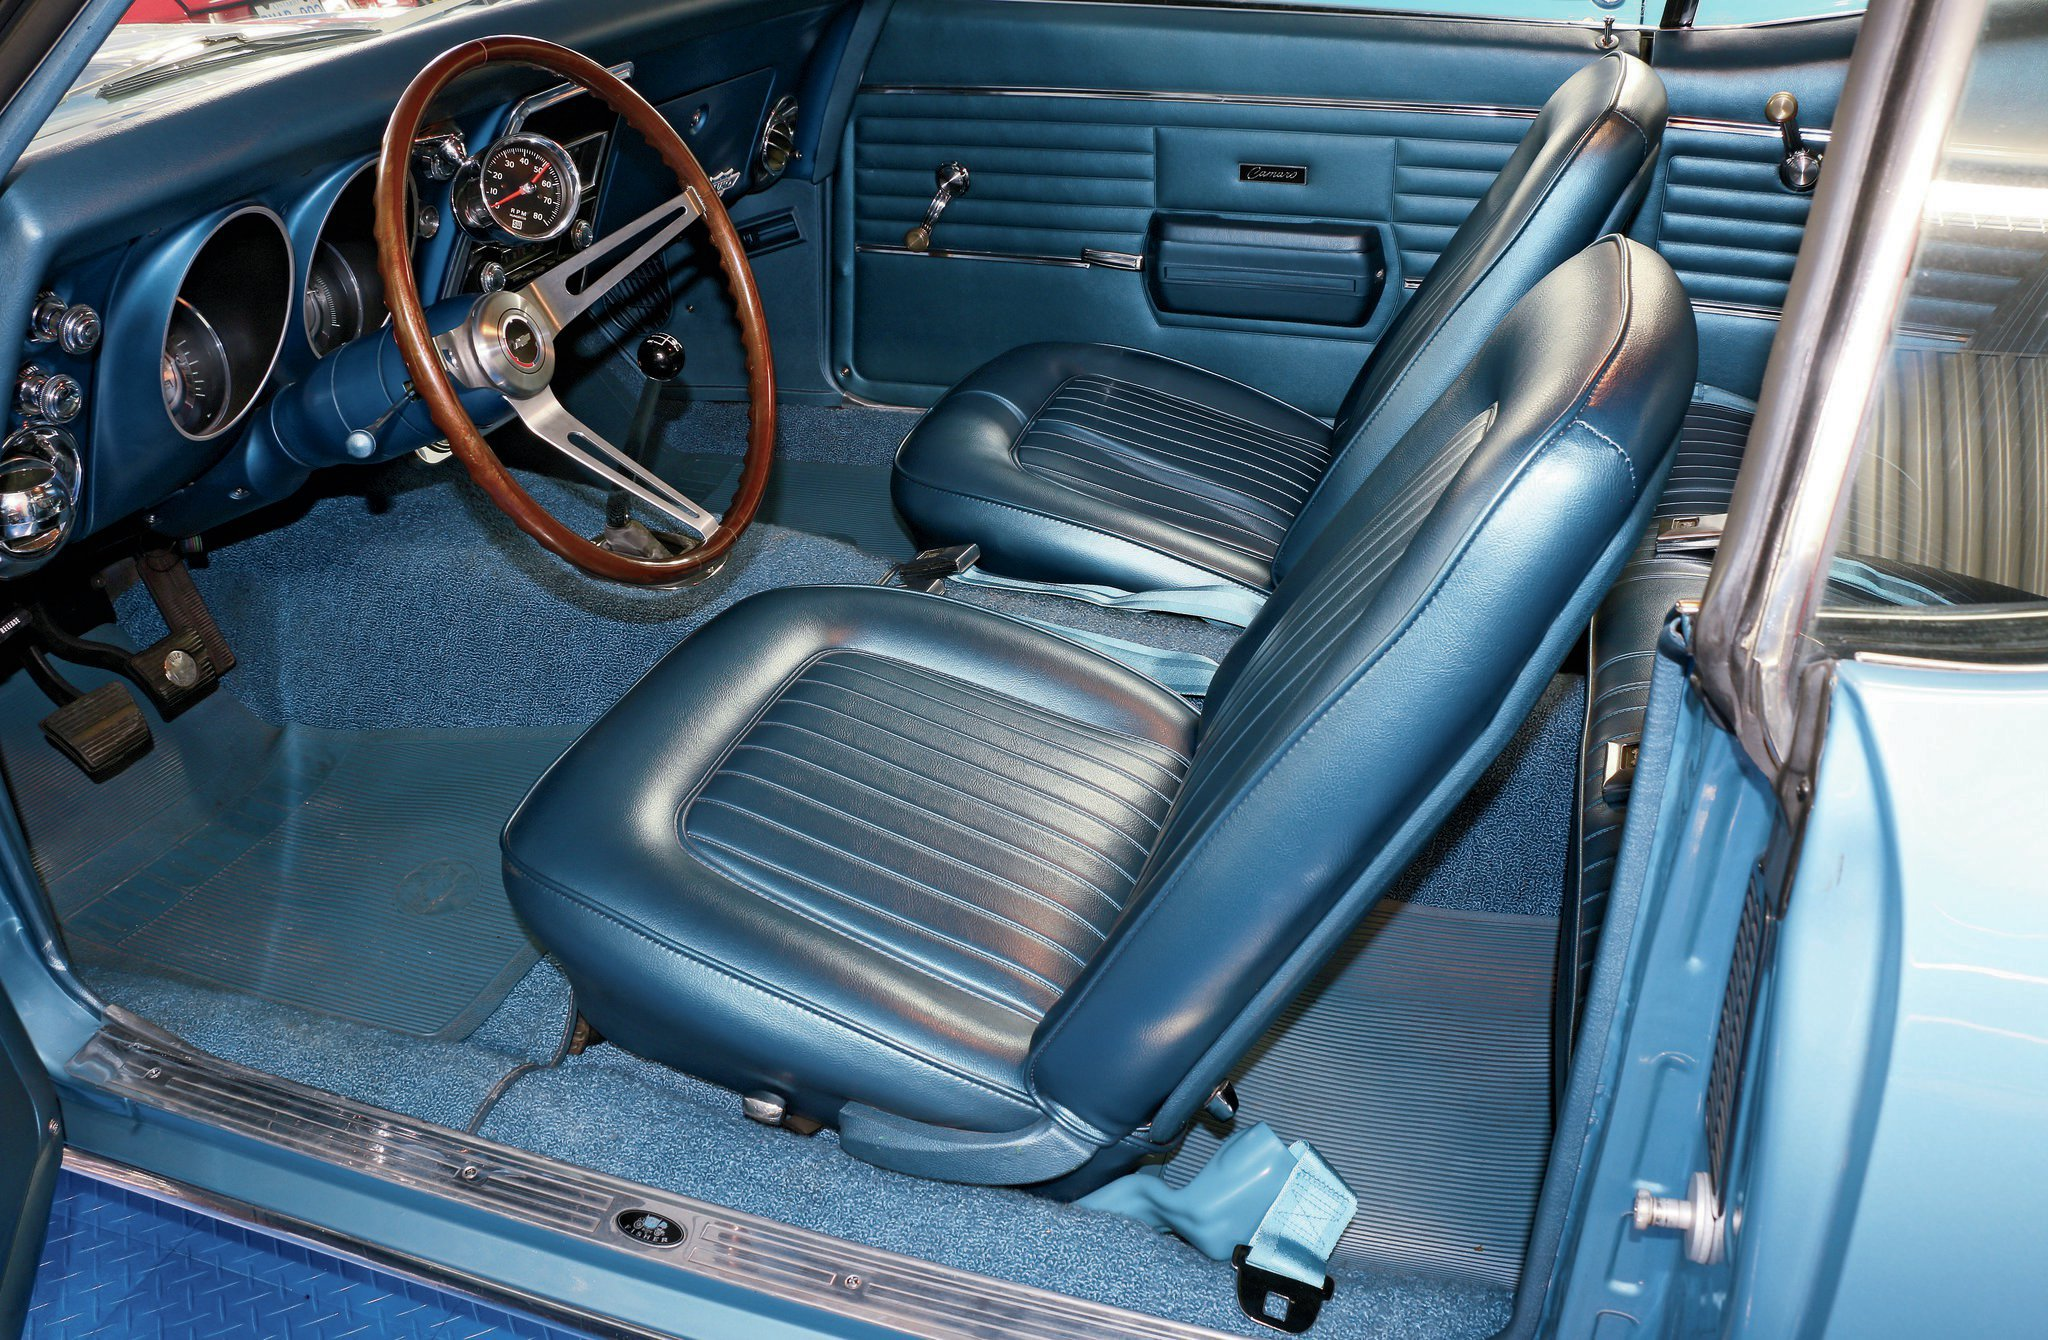 The factory blue interior is all business with the 140-mph speedometer, N34 Sport Styled Simulated Walnut Wheel, bucket seats, and no console.